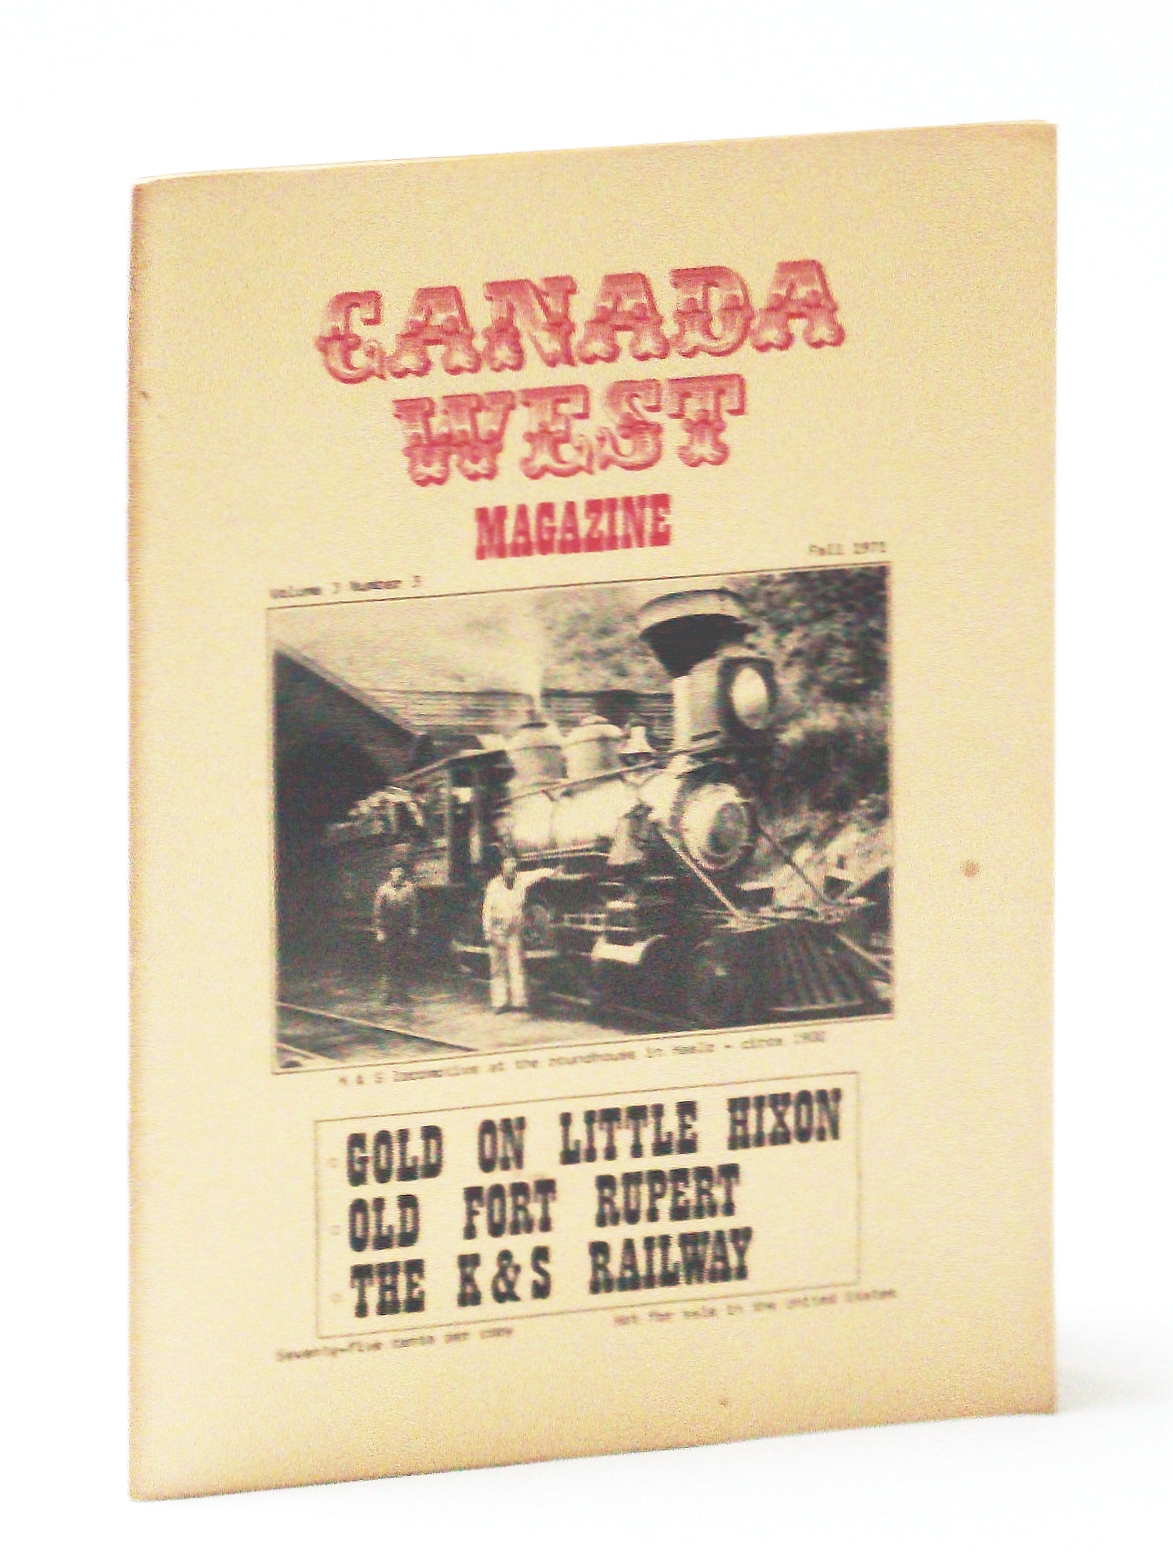 Image for Canada West Magazine, Fall 1971, Volume 3, Number 3 - Gold on Little Hixon / The K & S Railway